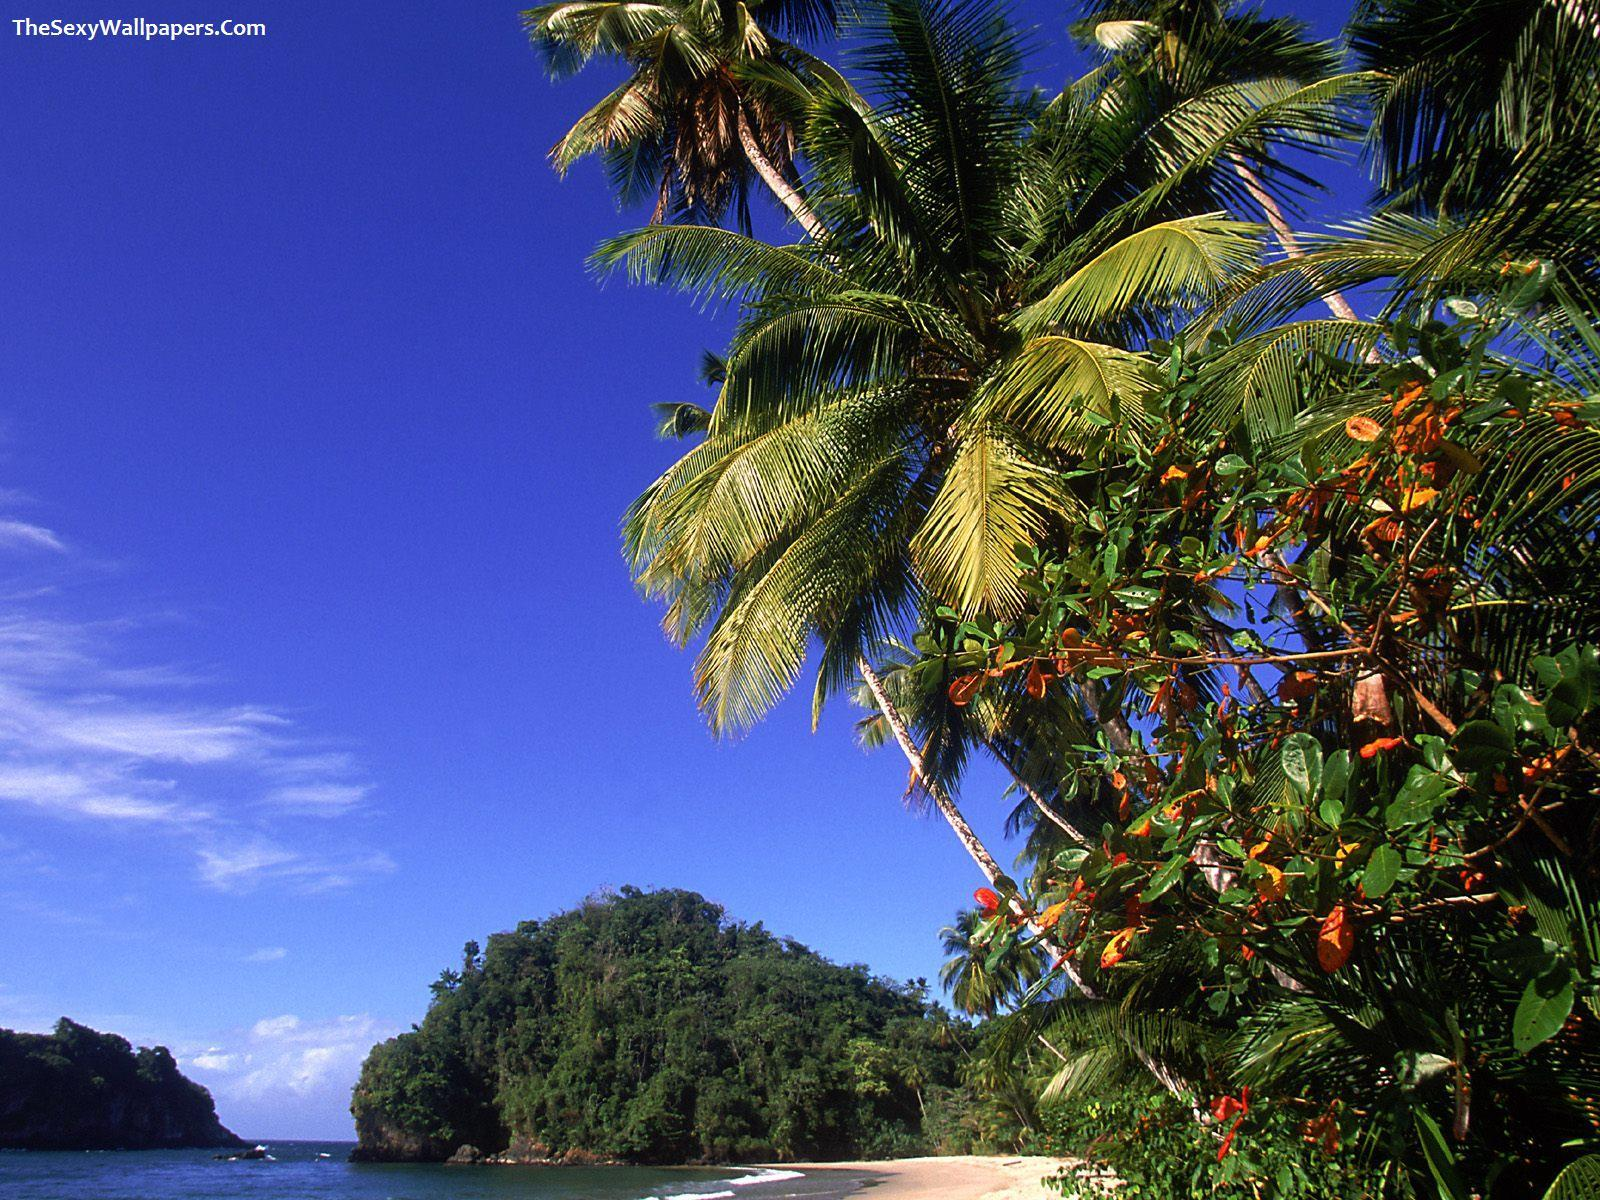 Paria Beach Trinidad Wallpaper - The Sexy Wallpapers